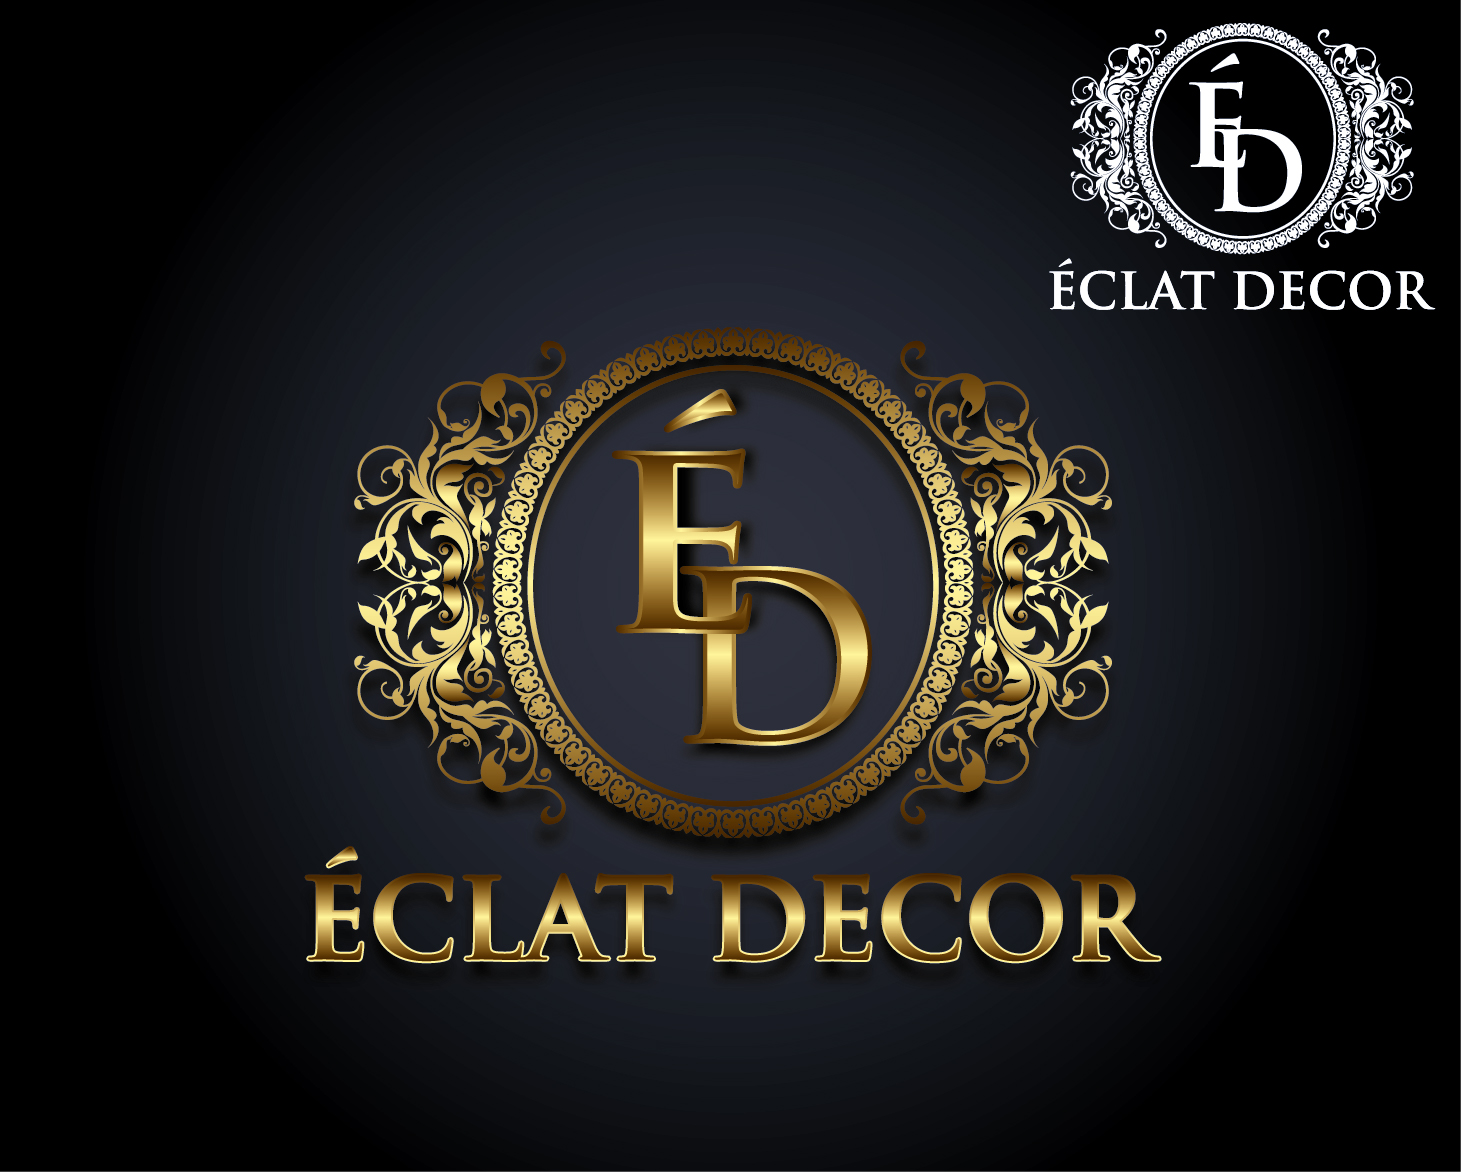 Logo Design by VENTSISLAV KOVACHEV - Entry No. 81 in the Logo Design Contest Imaginative Logo Design for Éclat Decor.